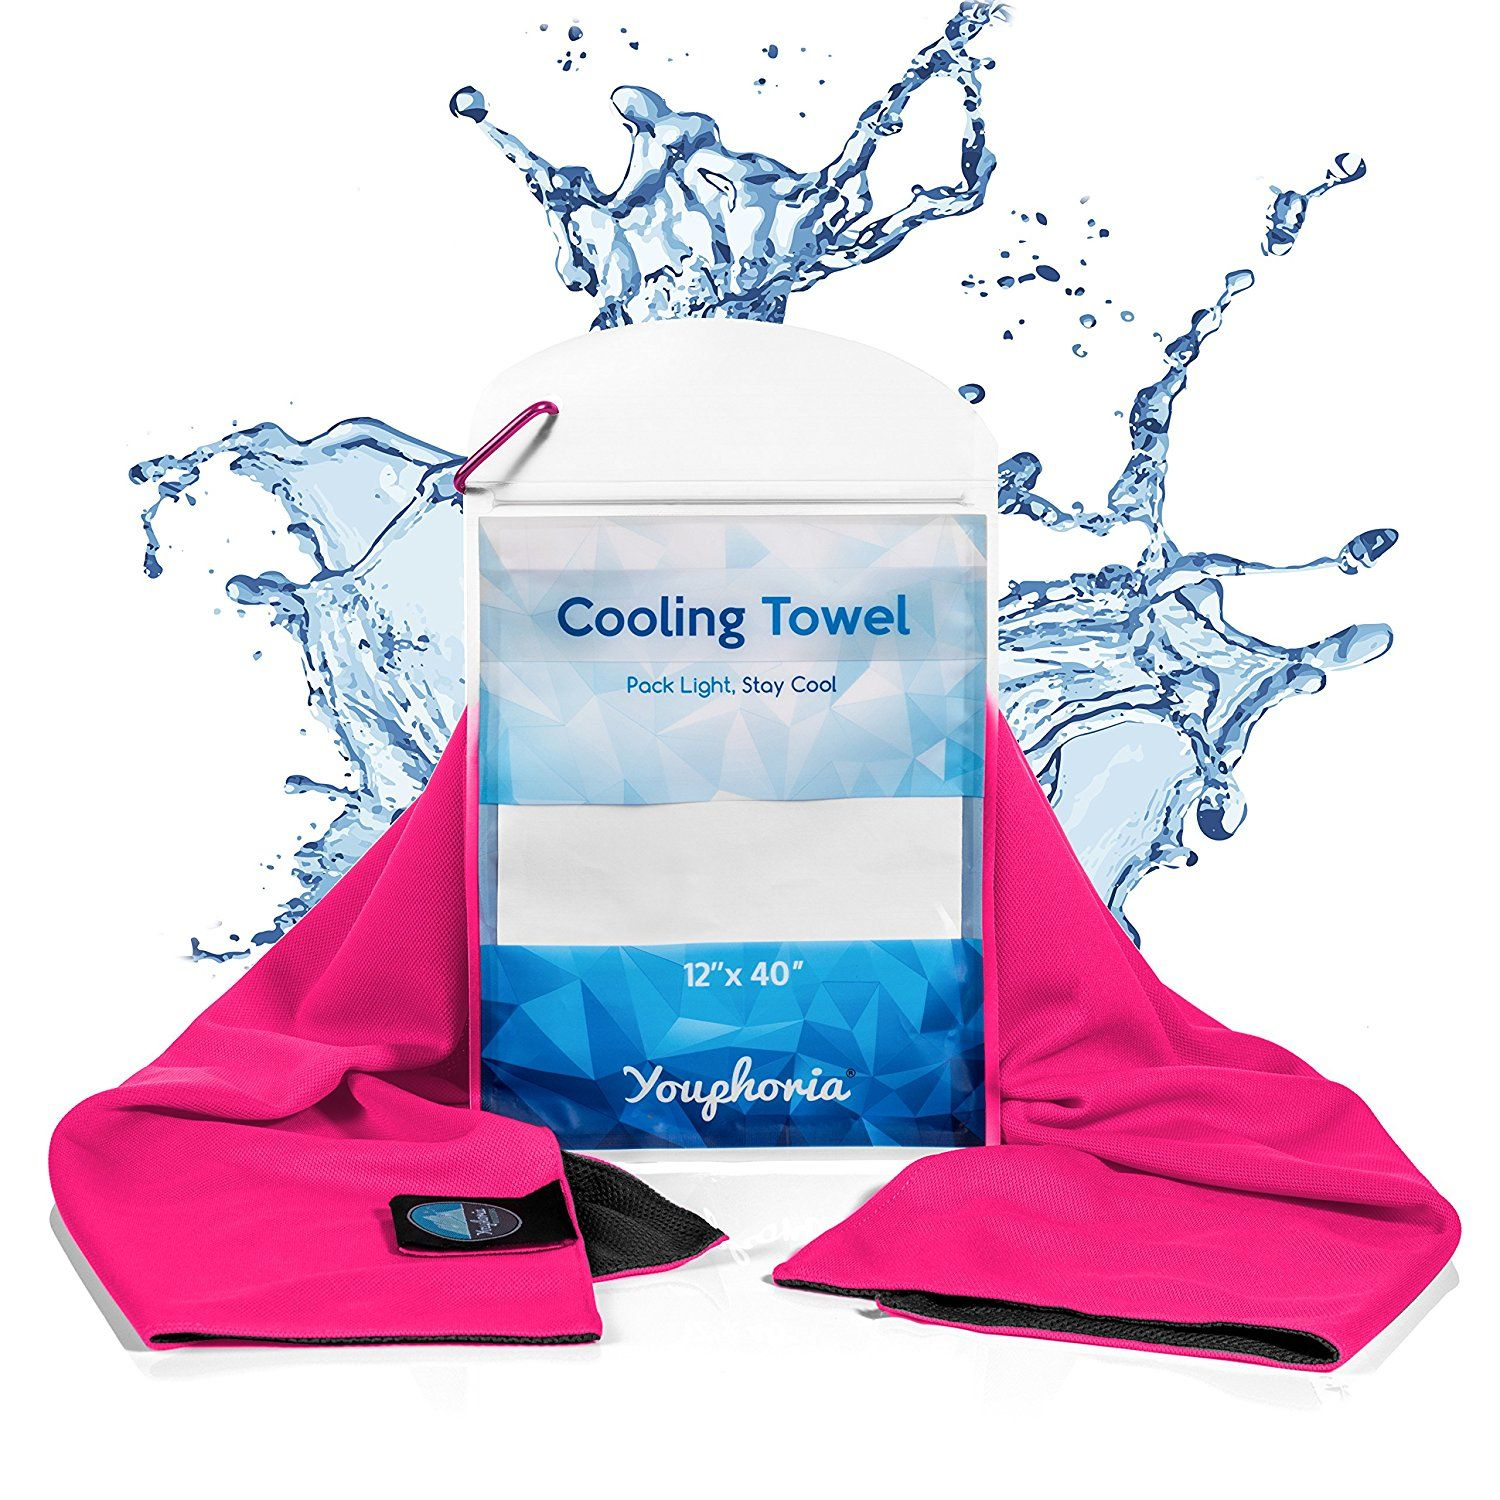 Youphoria Mesh Cooling Towel Stays Cool Longer Won T Leave You Wet Compact Waterproof Carry Case Included